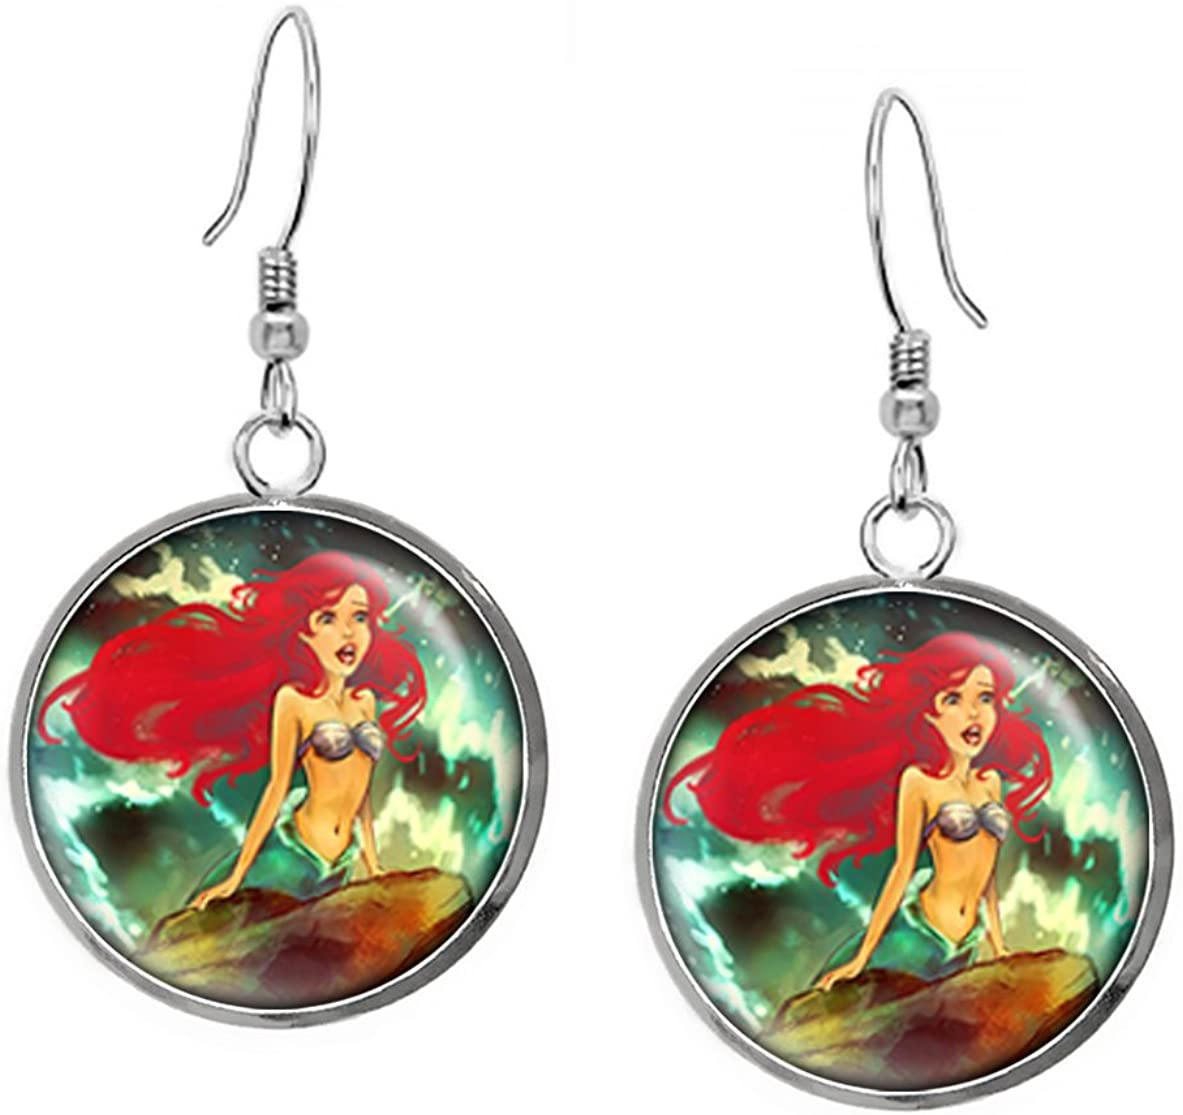 """Disney/'s The Little Mermaid /""""ARIEL/"""" Glass Pendant with Leather Necklace"""